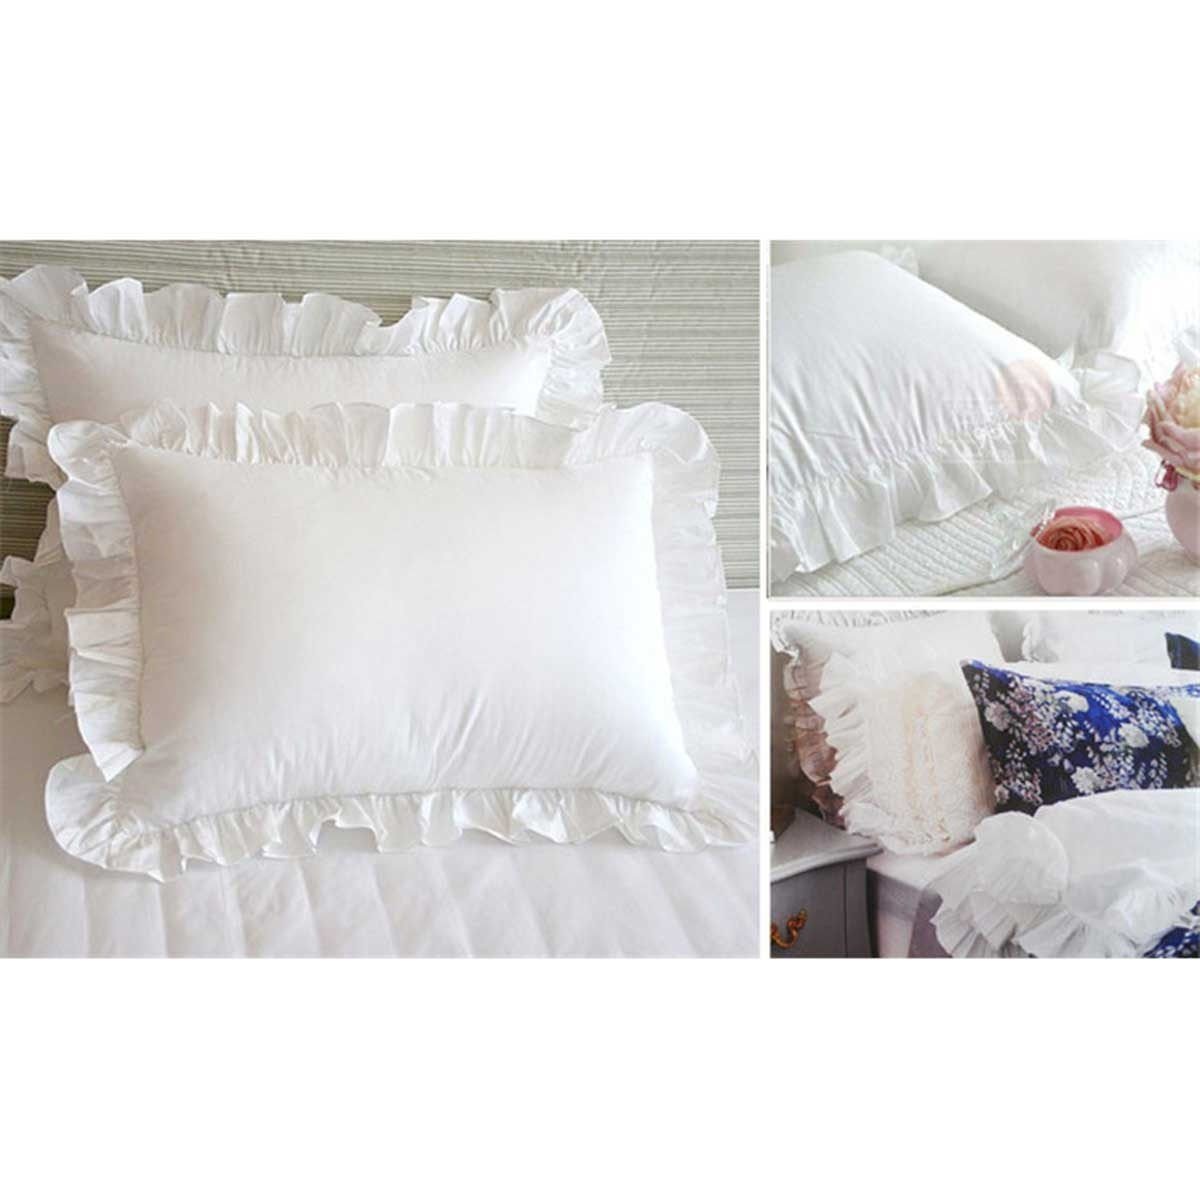 ruffle pillow shams decorative white cotton pillowcases with invisible zipper for bed decor